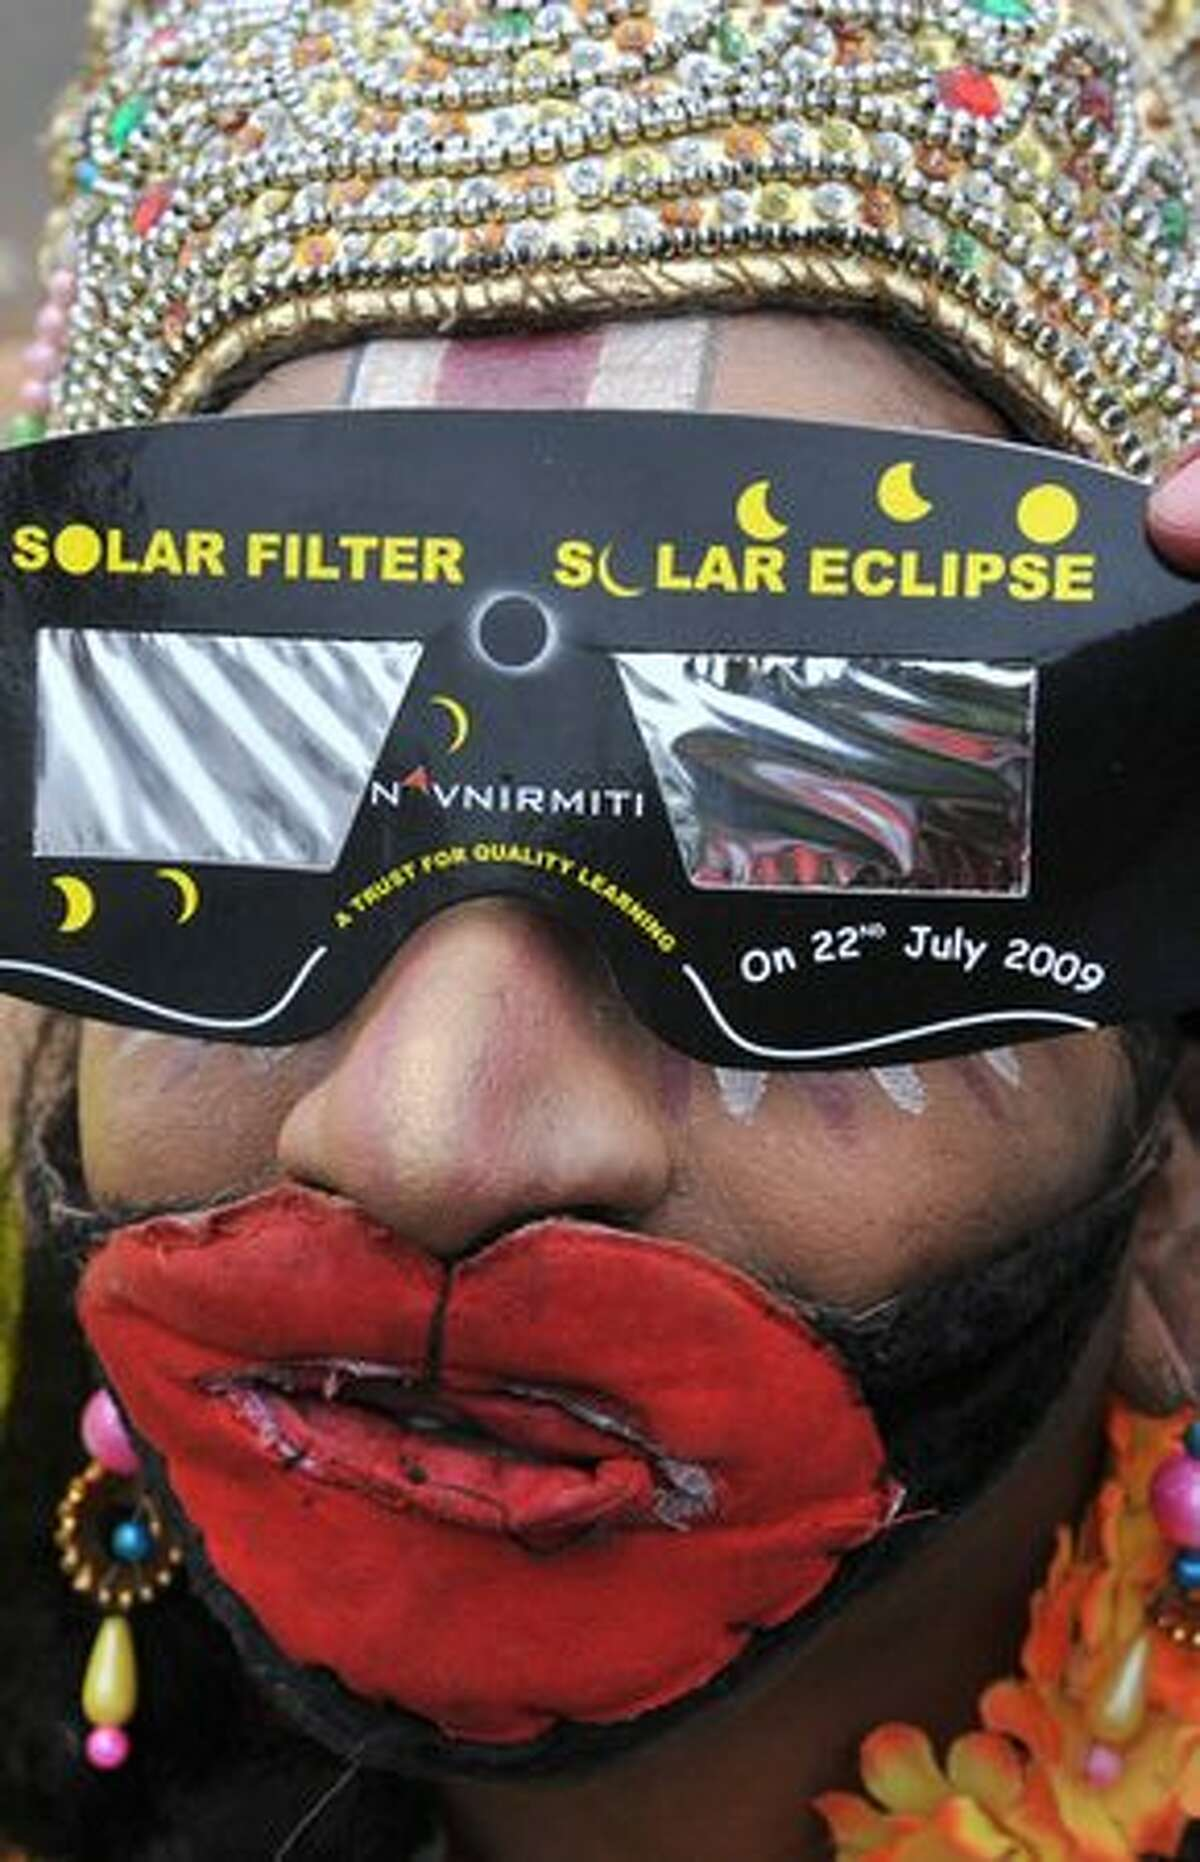 Indian artist B. Nookaji, dressed as Hindu ape god Hanuman, uses sunglasses to watch the solar eclipse in Hyderabad, India. The annual event is India's longest lasting solar eclipse of the last millenium which will remain at its peak 11 minutes and travel from southern India's Tamil Nadu state to the northeast of the country.